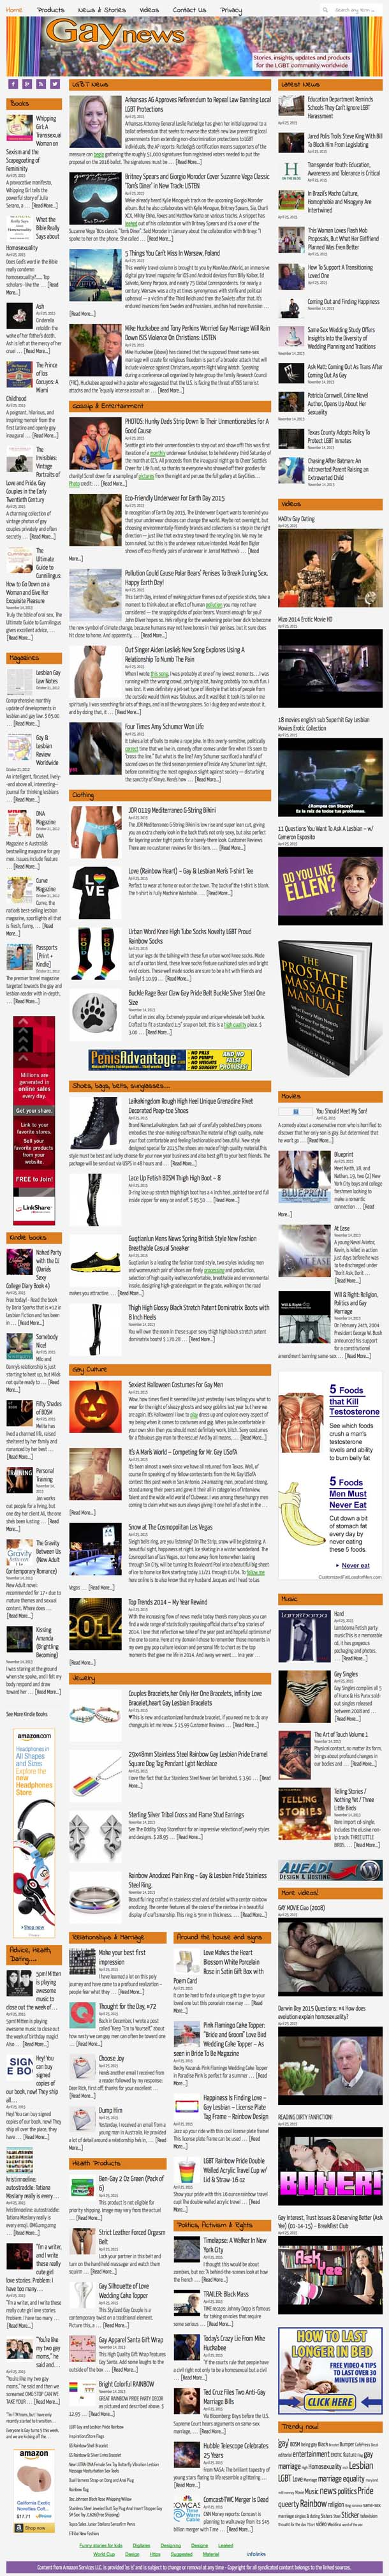 News, insights, updates and products for the gay community worldwide